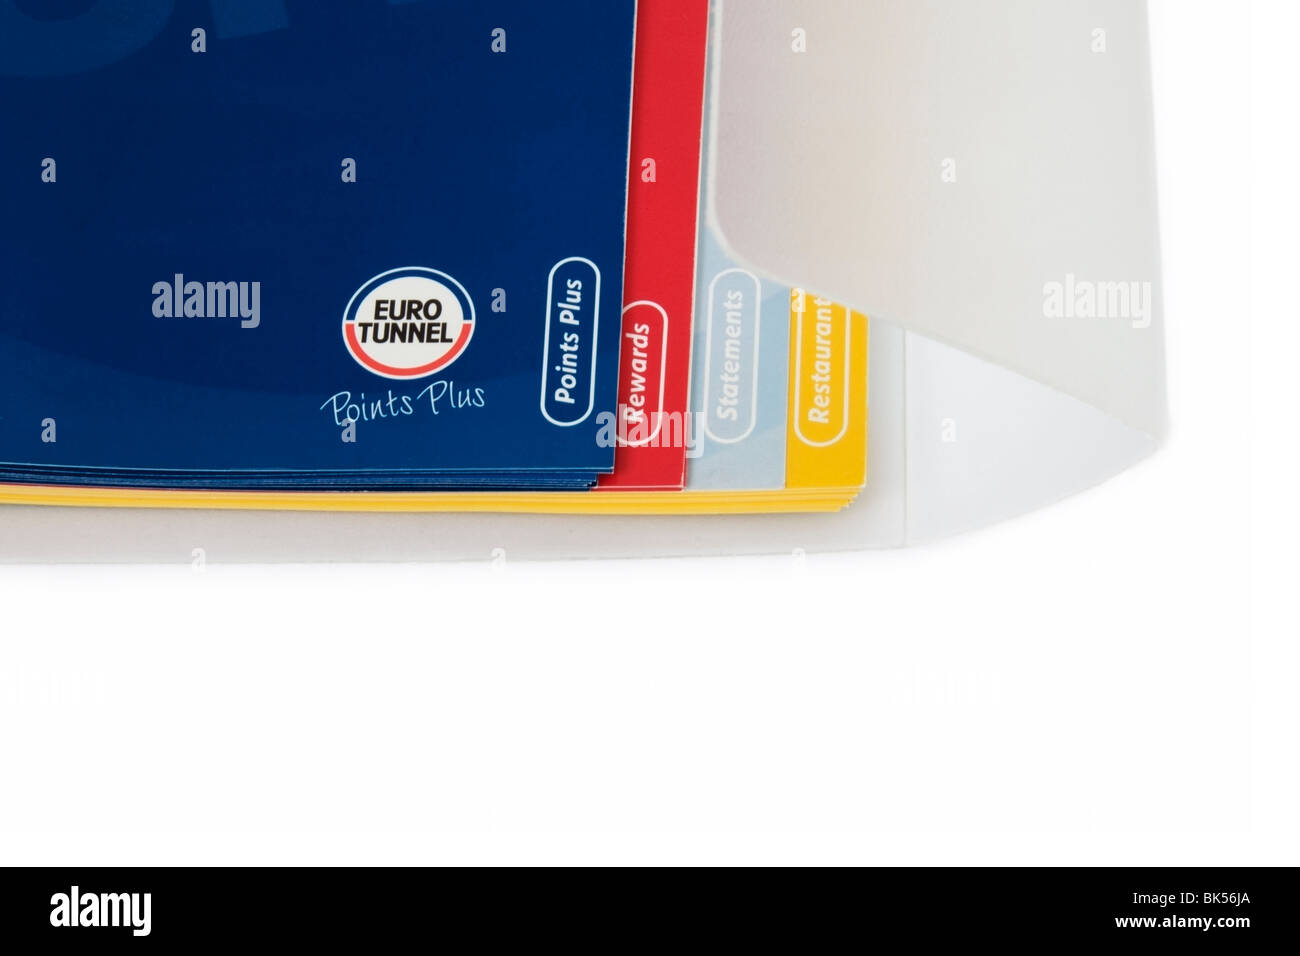 Eurotunnel Points Plus consumer rewords travel pack documents on white background - Stock Image